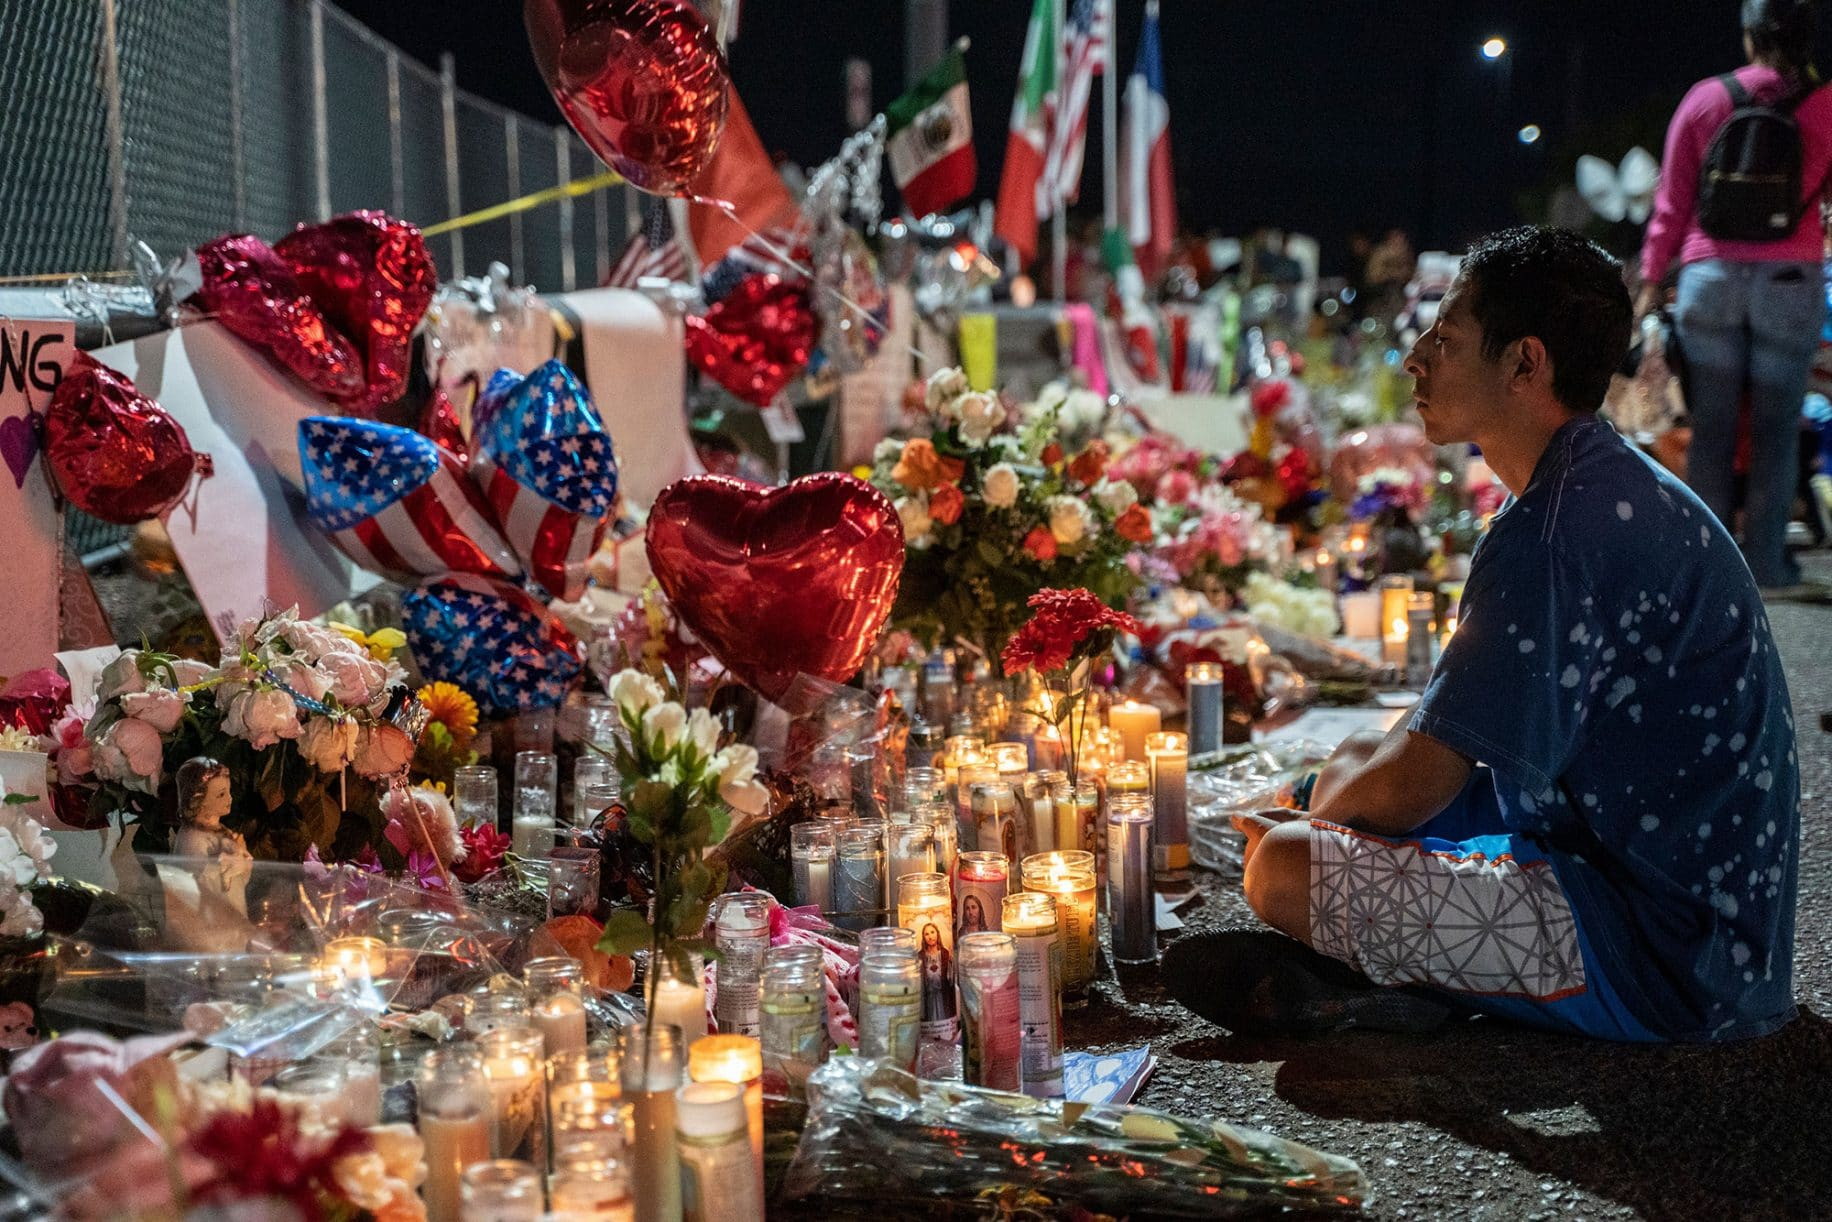 After El Paso shooting, governor creates Texas Safety Commission